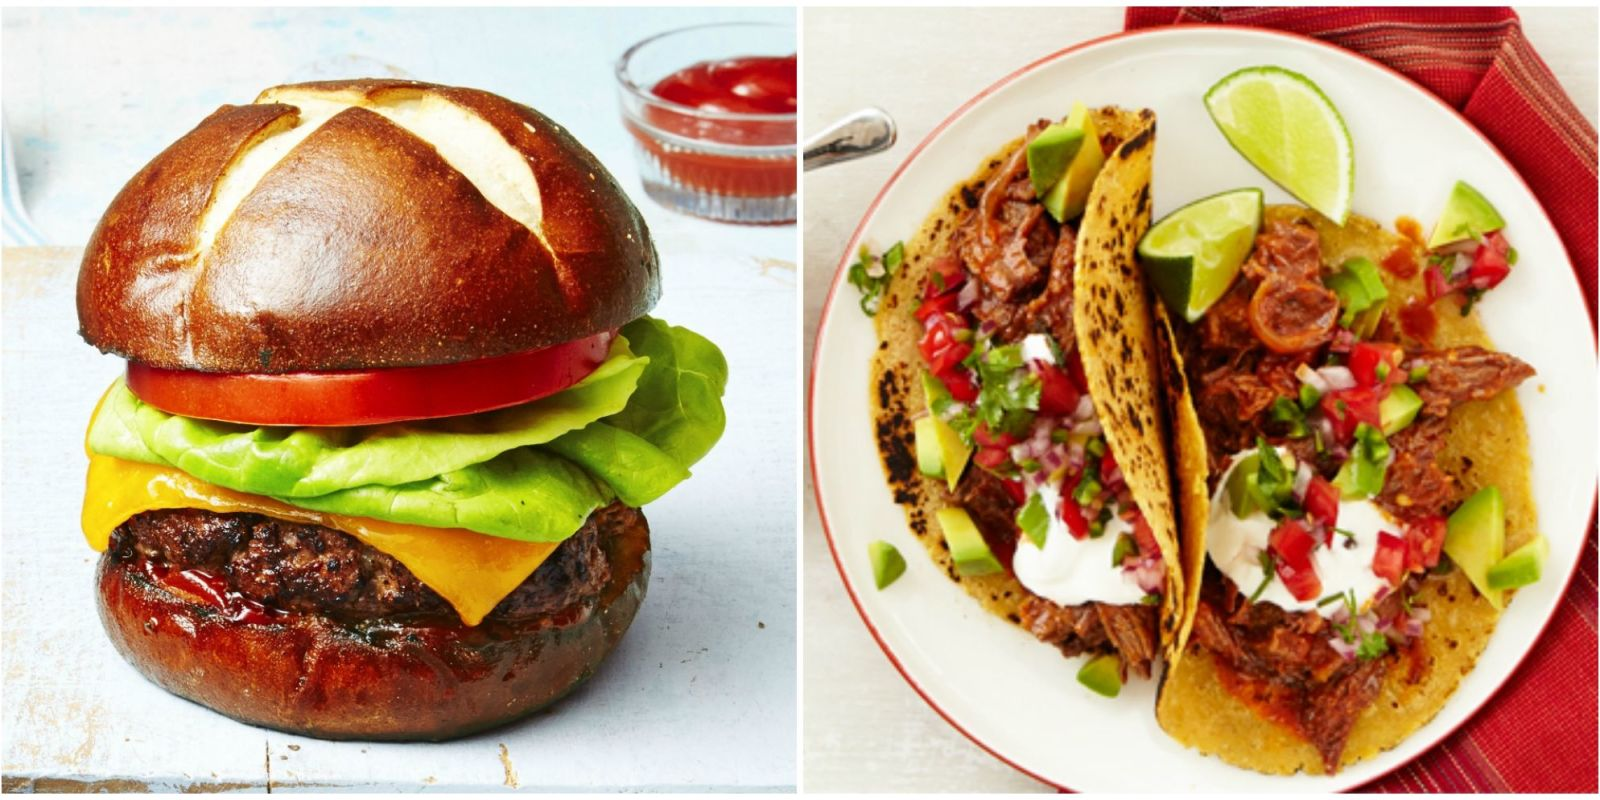 50 easy ground beef recipes what to make for dinner with for Good dinner recipes with ground beef